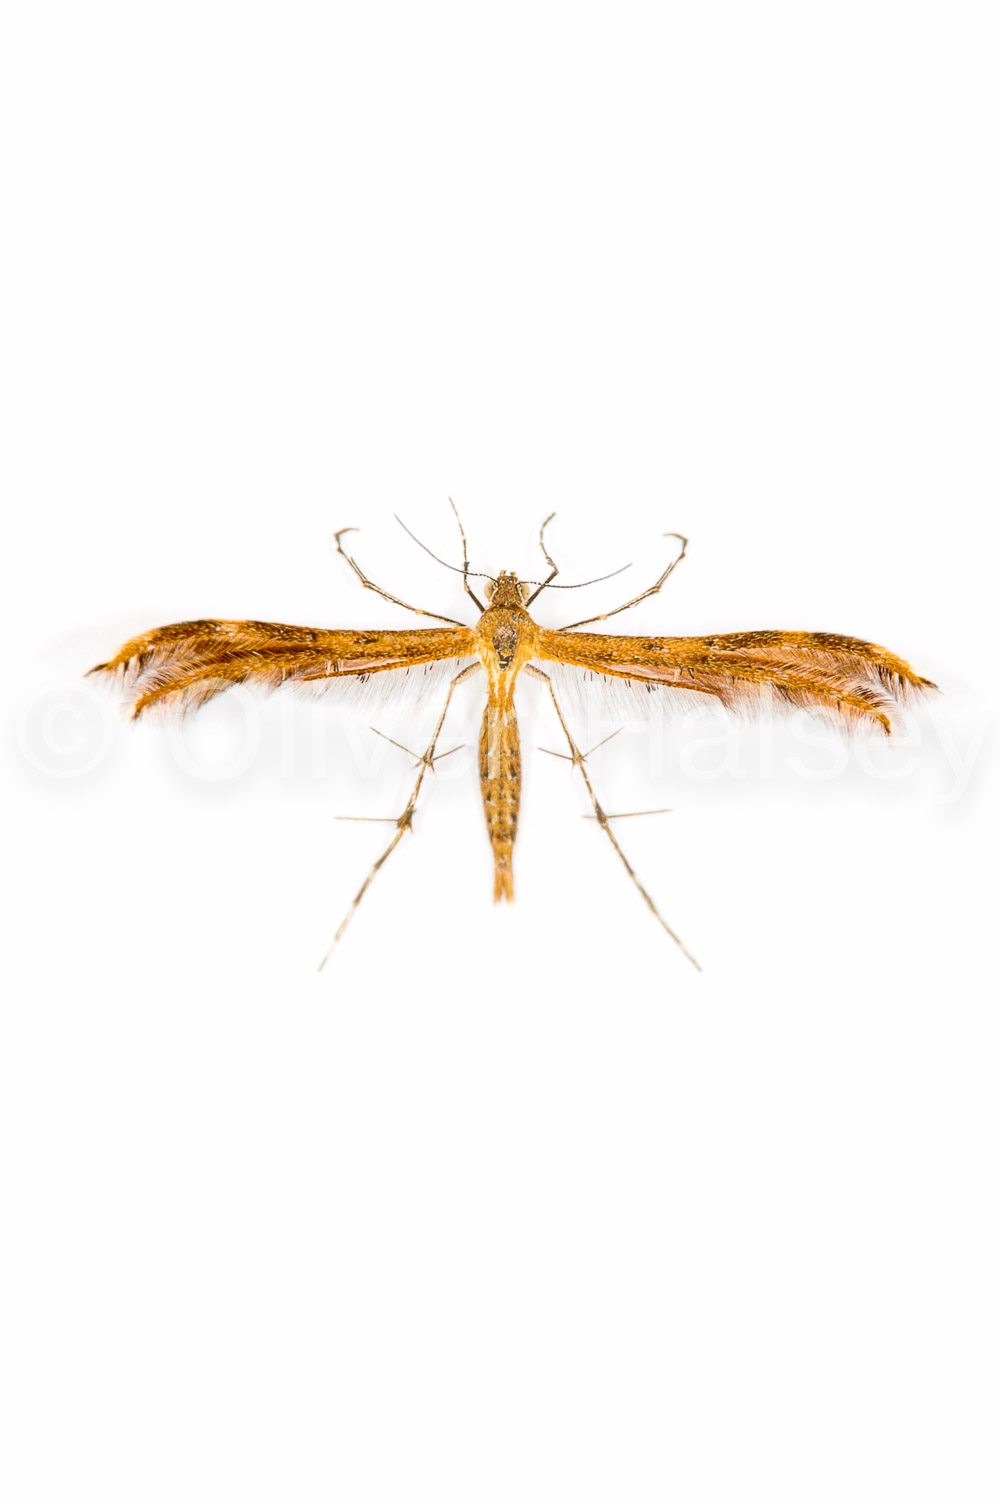 M66.  Plume Moth (Family Pterophoidae)